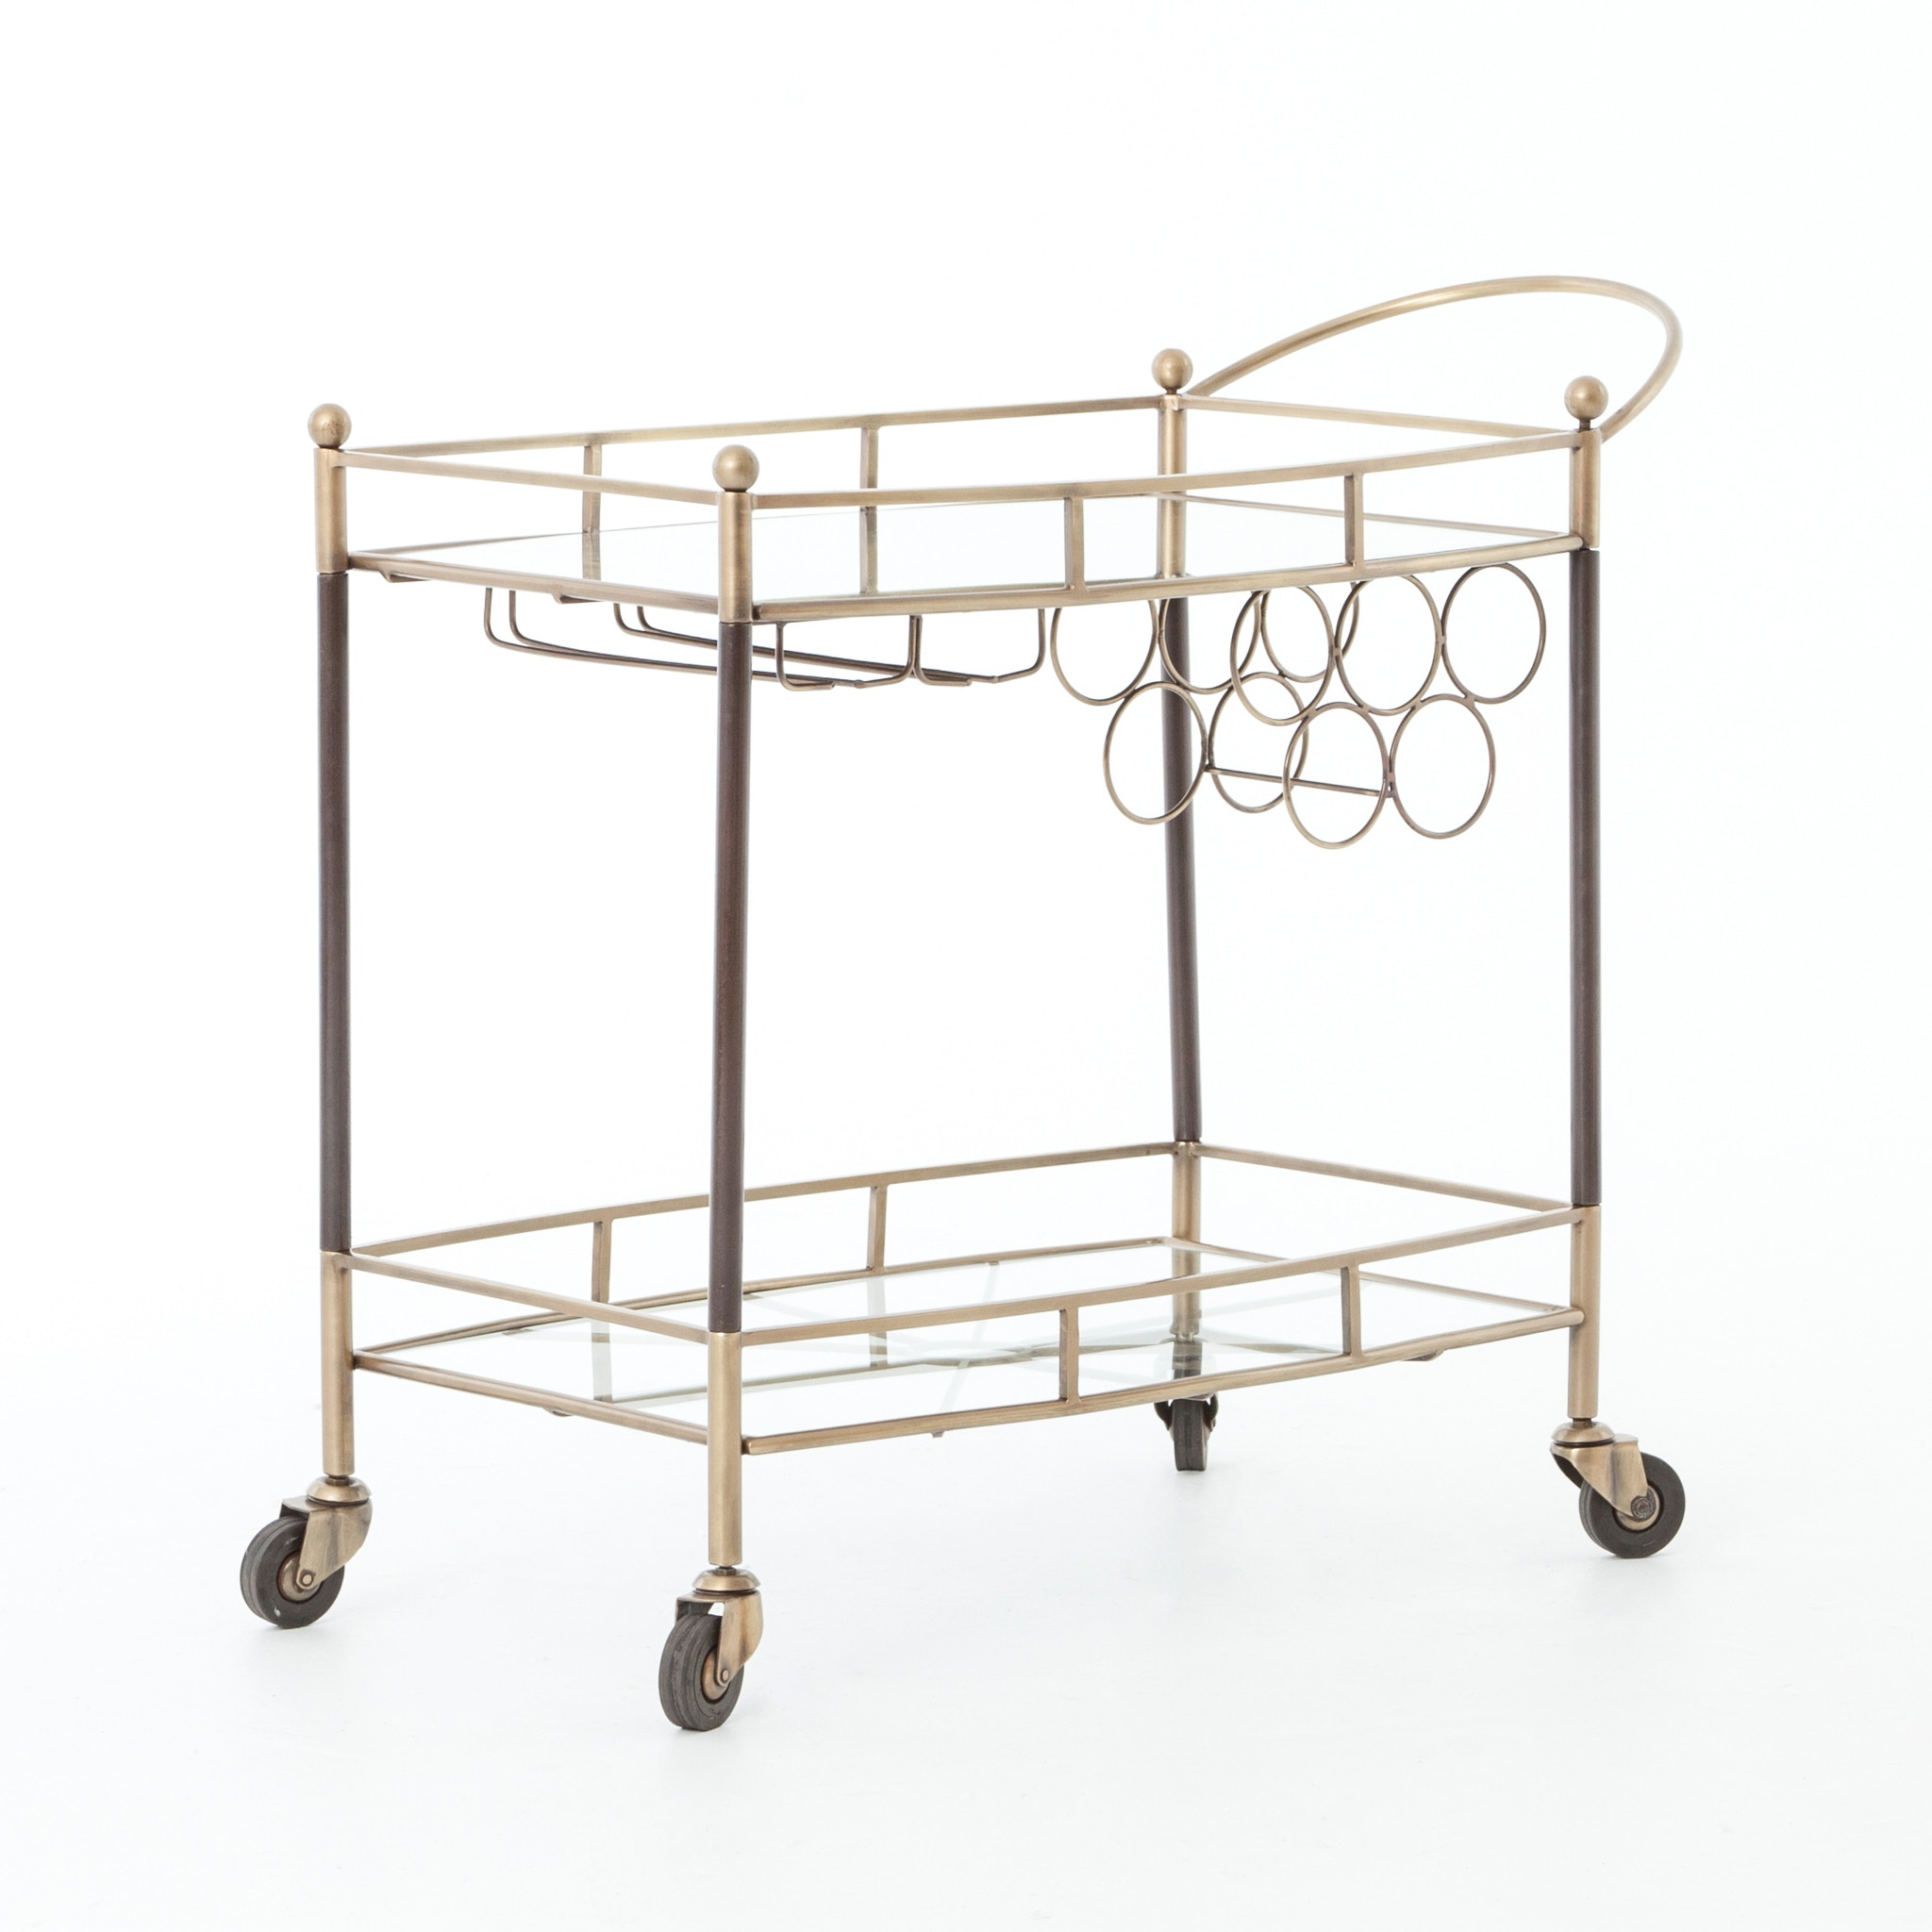 Beau Four Hands Furniture Coles Bar Cart Antique Brass IASR 004KD